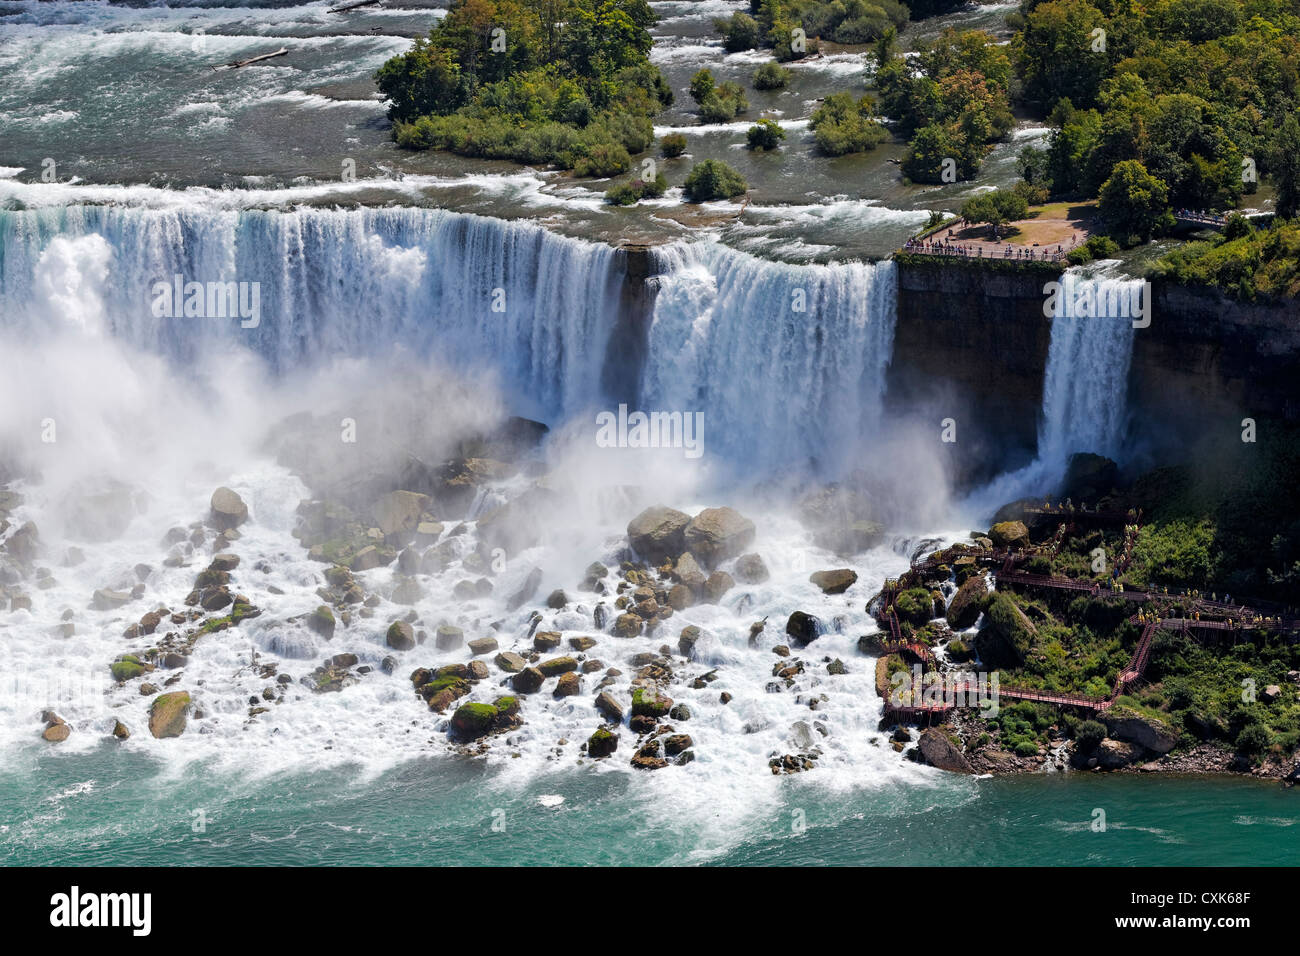 Visitors at The American Falls, Niagara Falls, New York - Stock Image